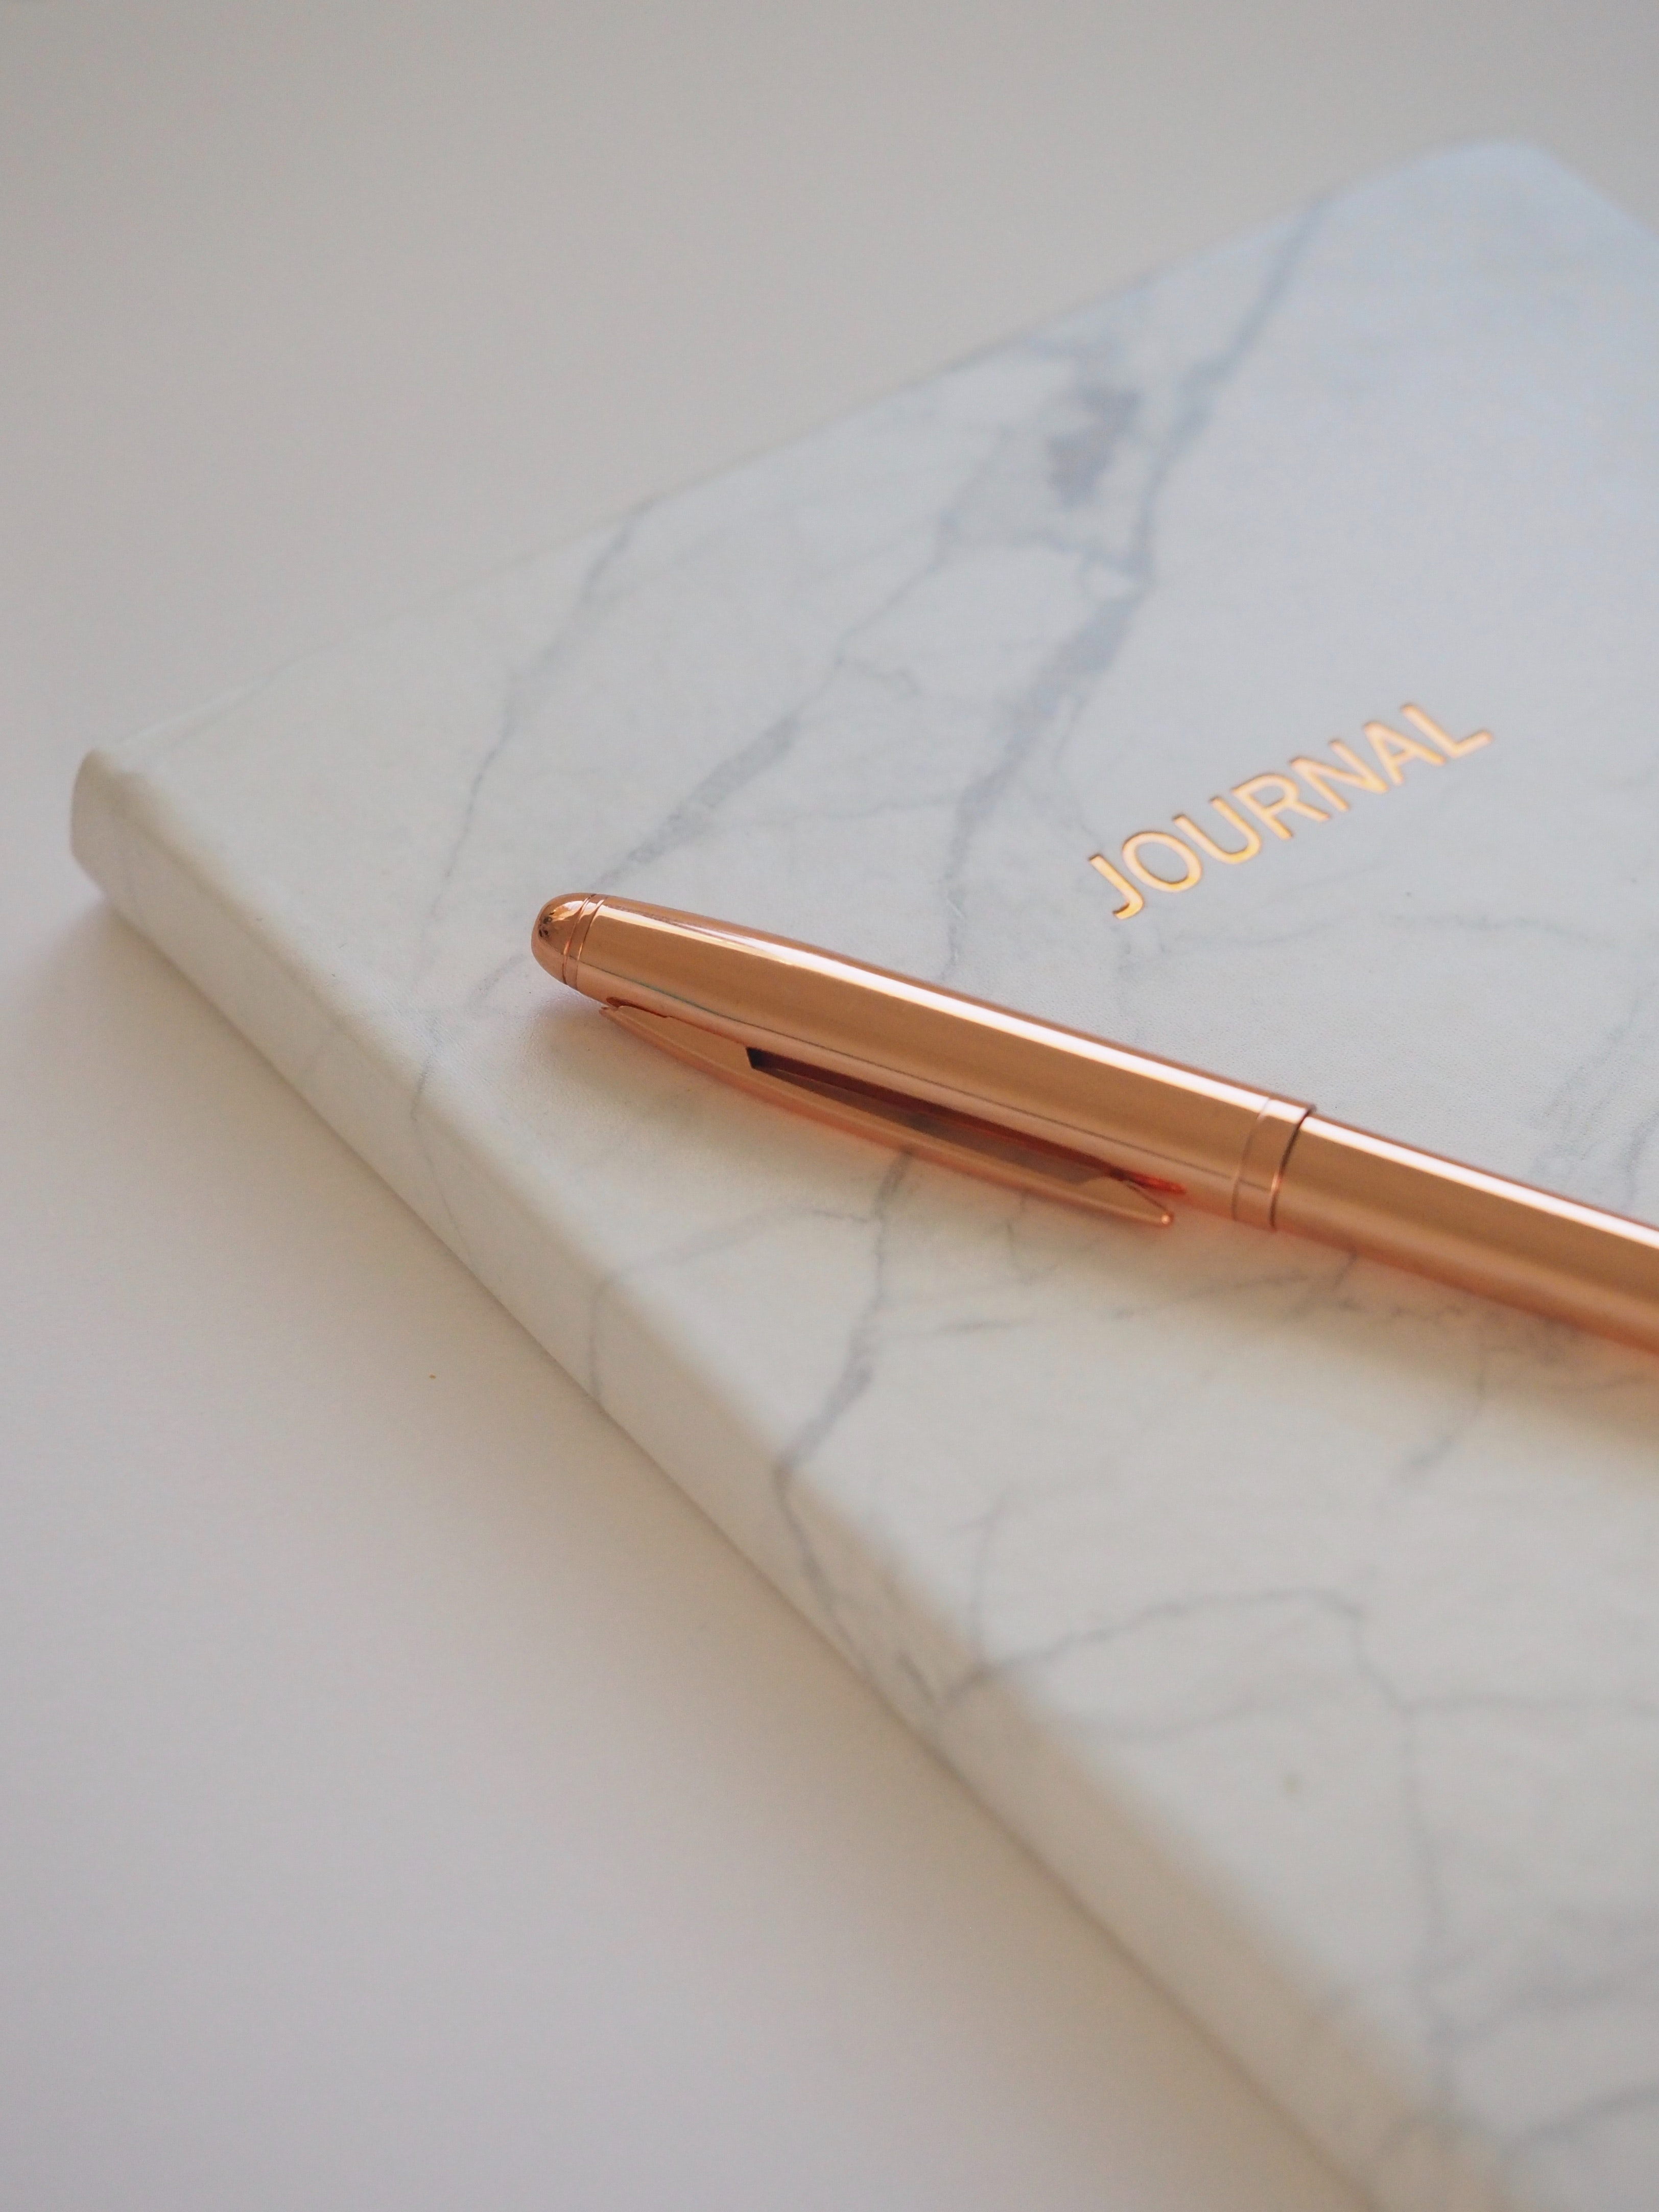 Gold Pen on Journal Book, Marble, Writing, Write, Work, HQ Photo